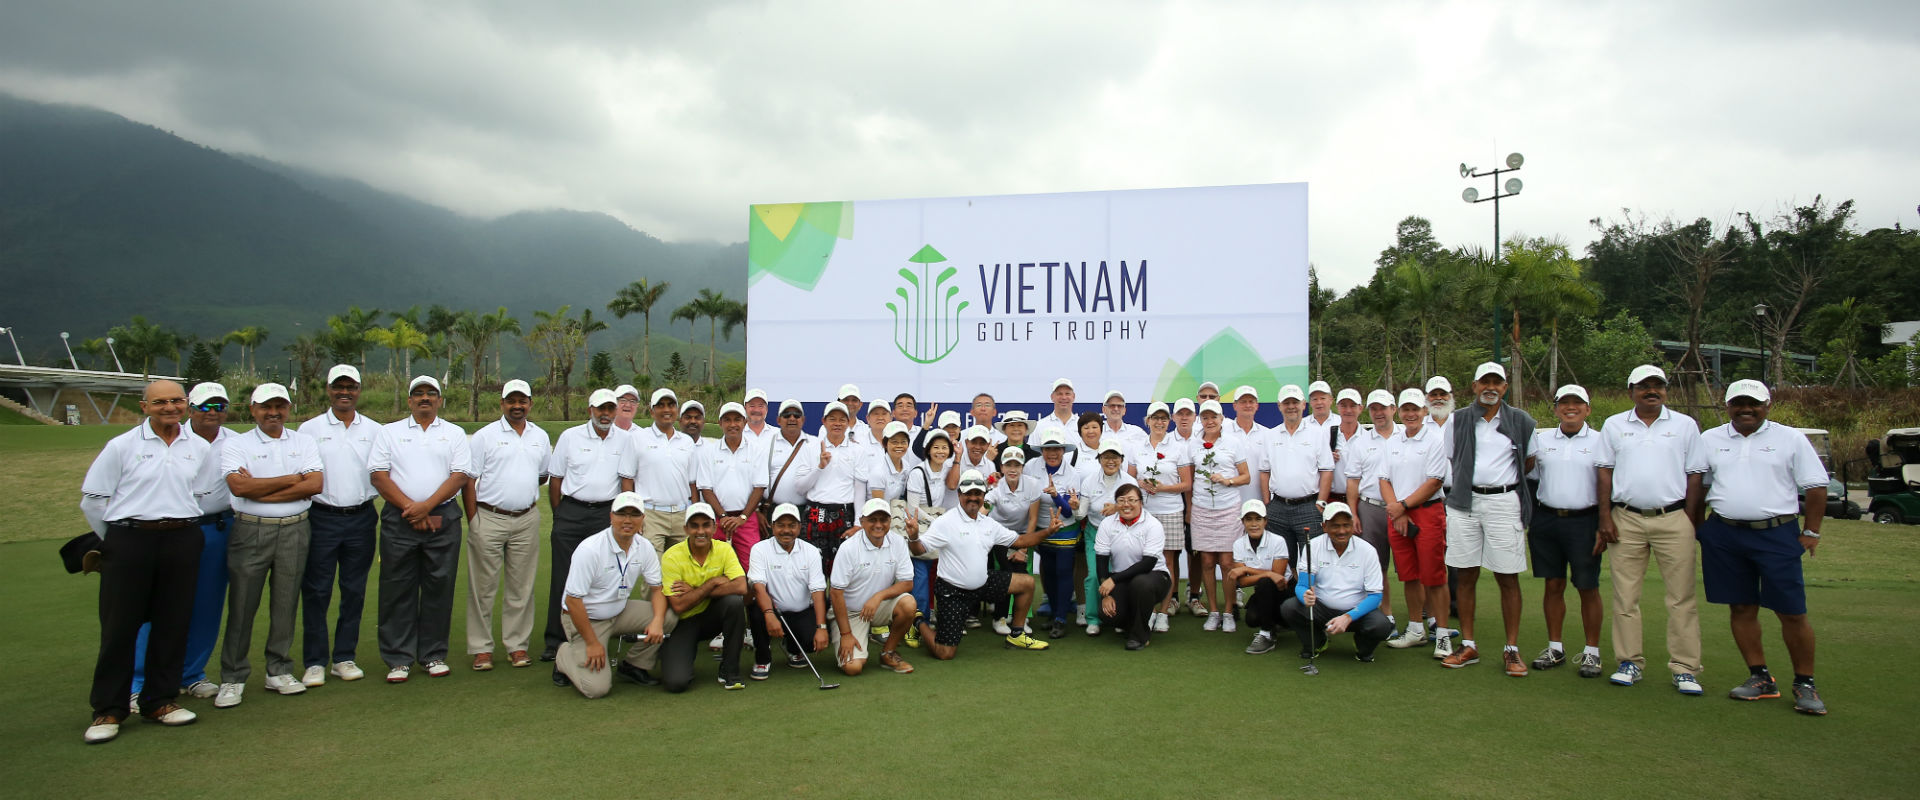 Vietnam Golf Trophy Danang 2017